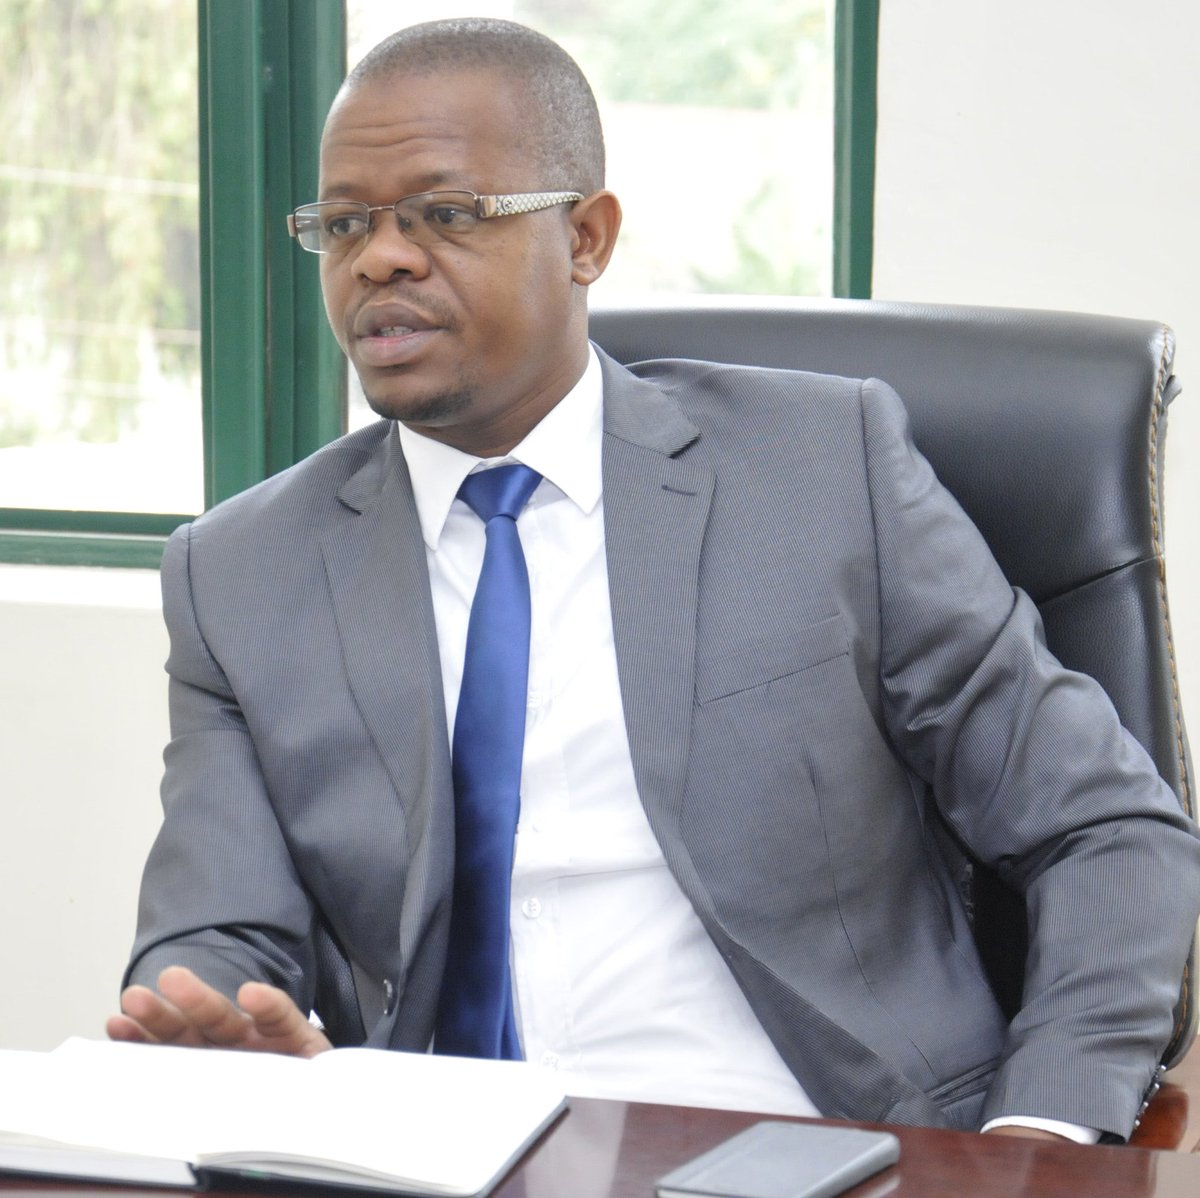 The #Uganda FA President @MosesMagogo has been announced as the winner for the Member of Parliament for Budiope East.   #UgandaElections #UgandaDecides